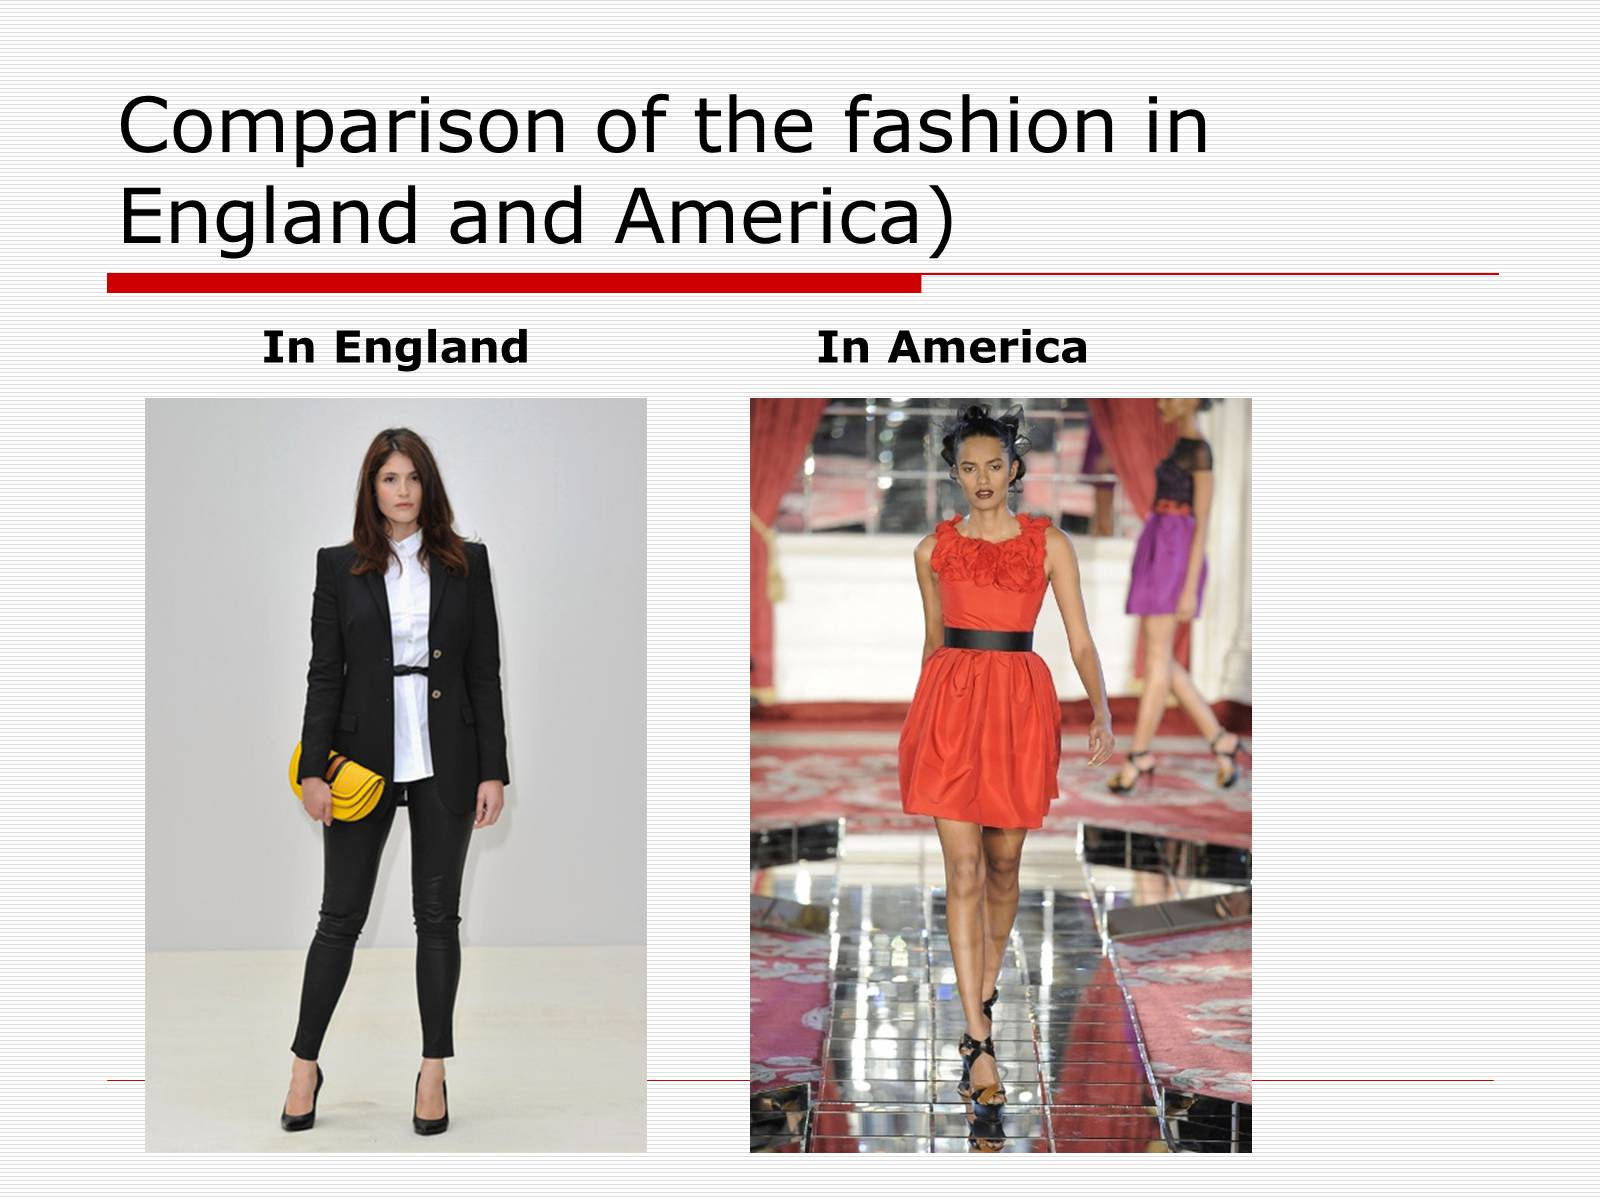 Презентація на тему «Comparison of the fashion in England and America» - Слайд #31